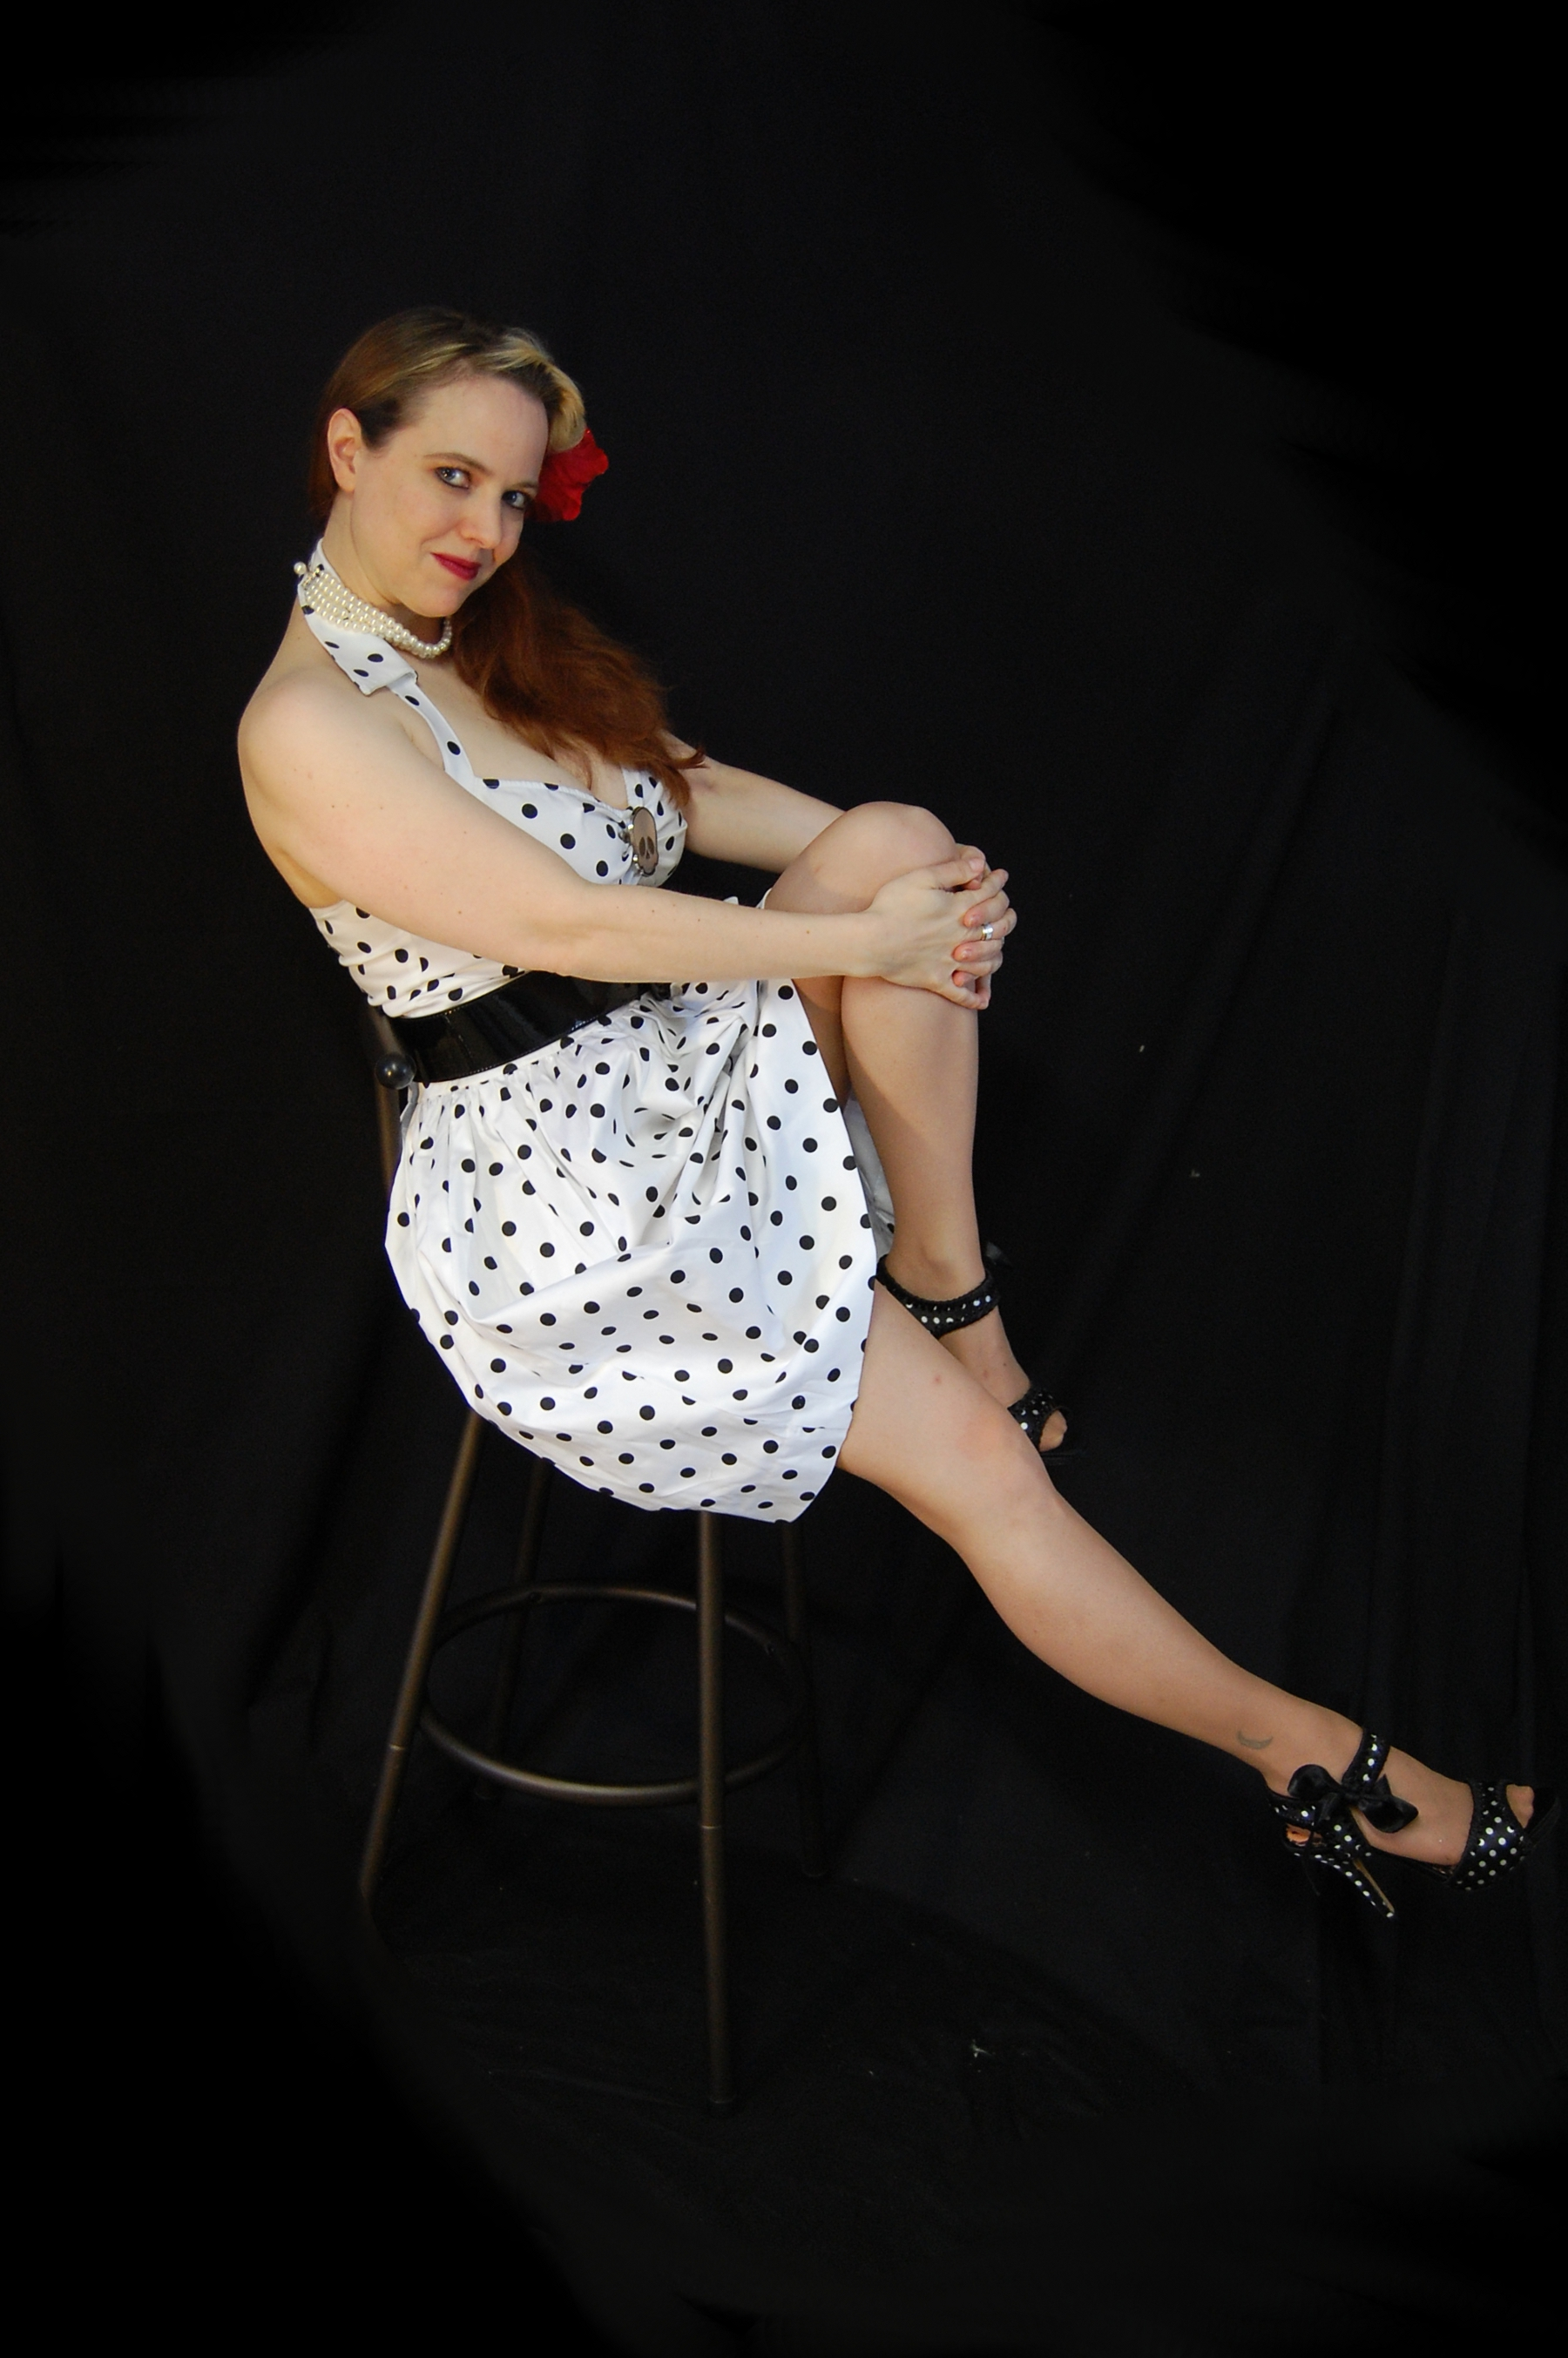 2010 Fife pinup white dress 0203